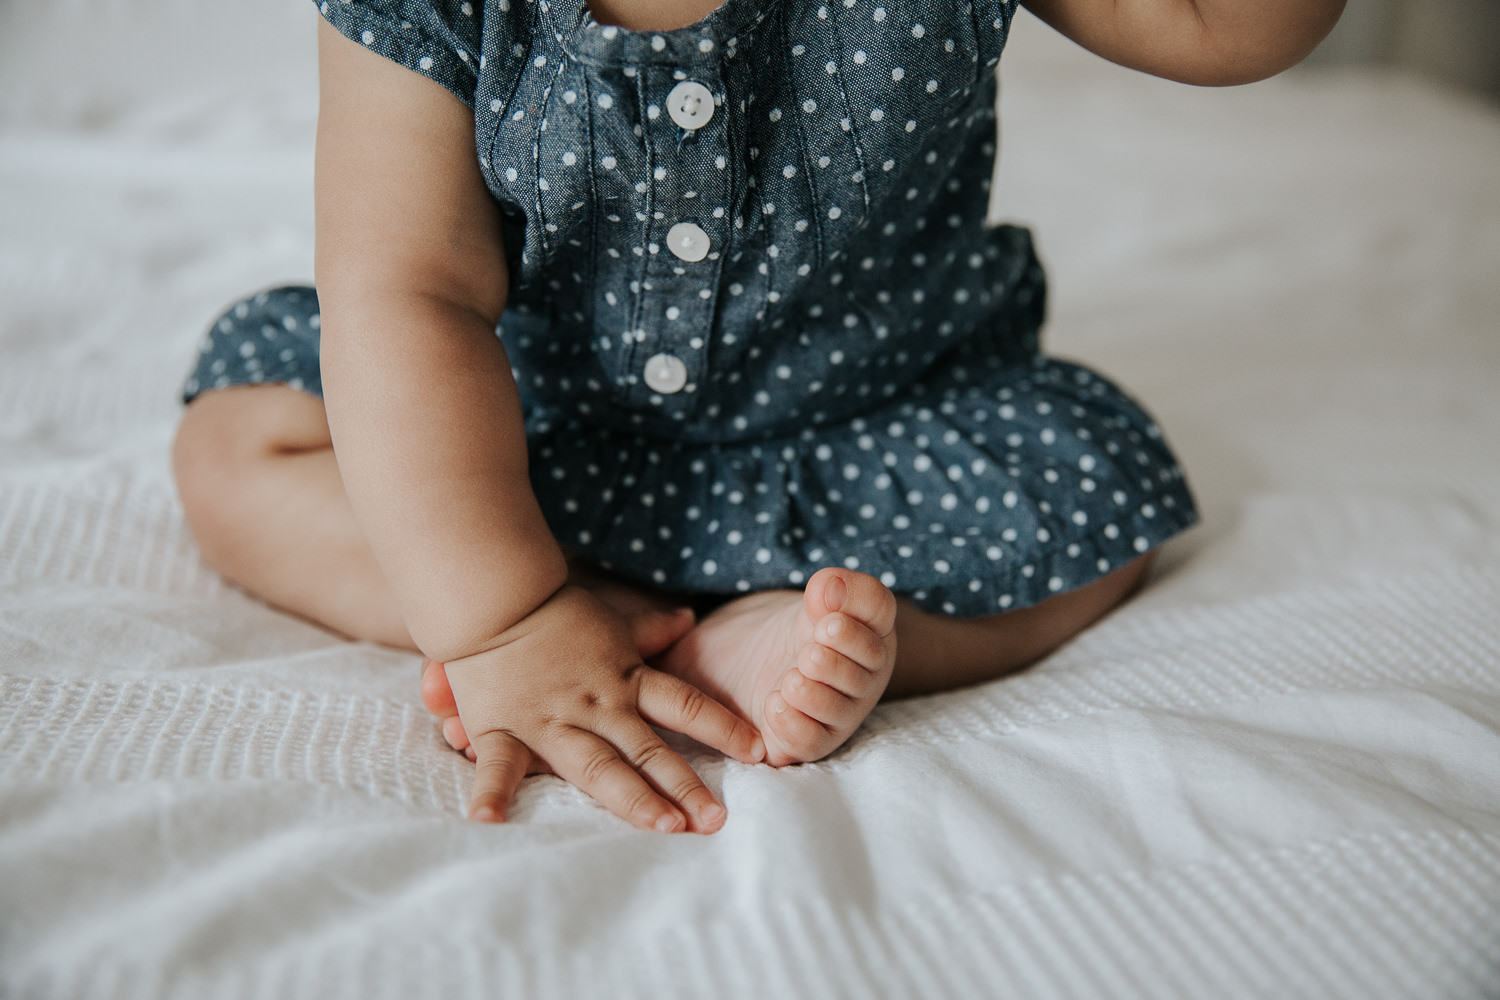 6 month old baby girl in blue and white polka dot dress sitting on bed, close up of hand and feet - Newmarket Lifestyle Photos